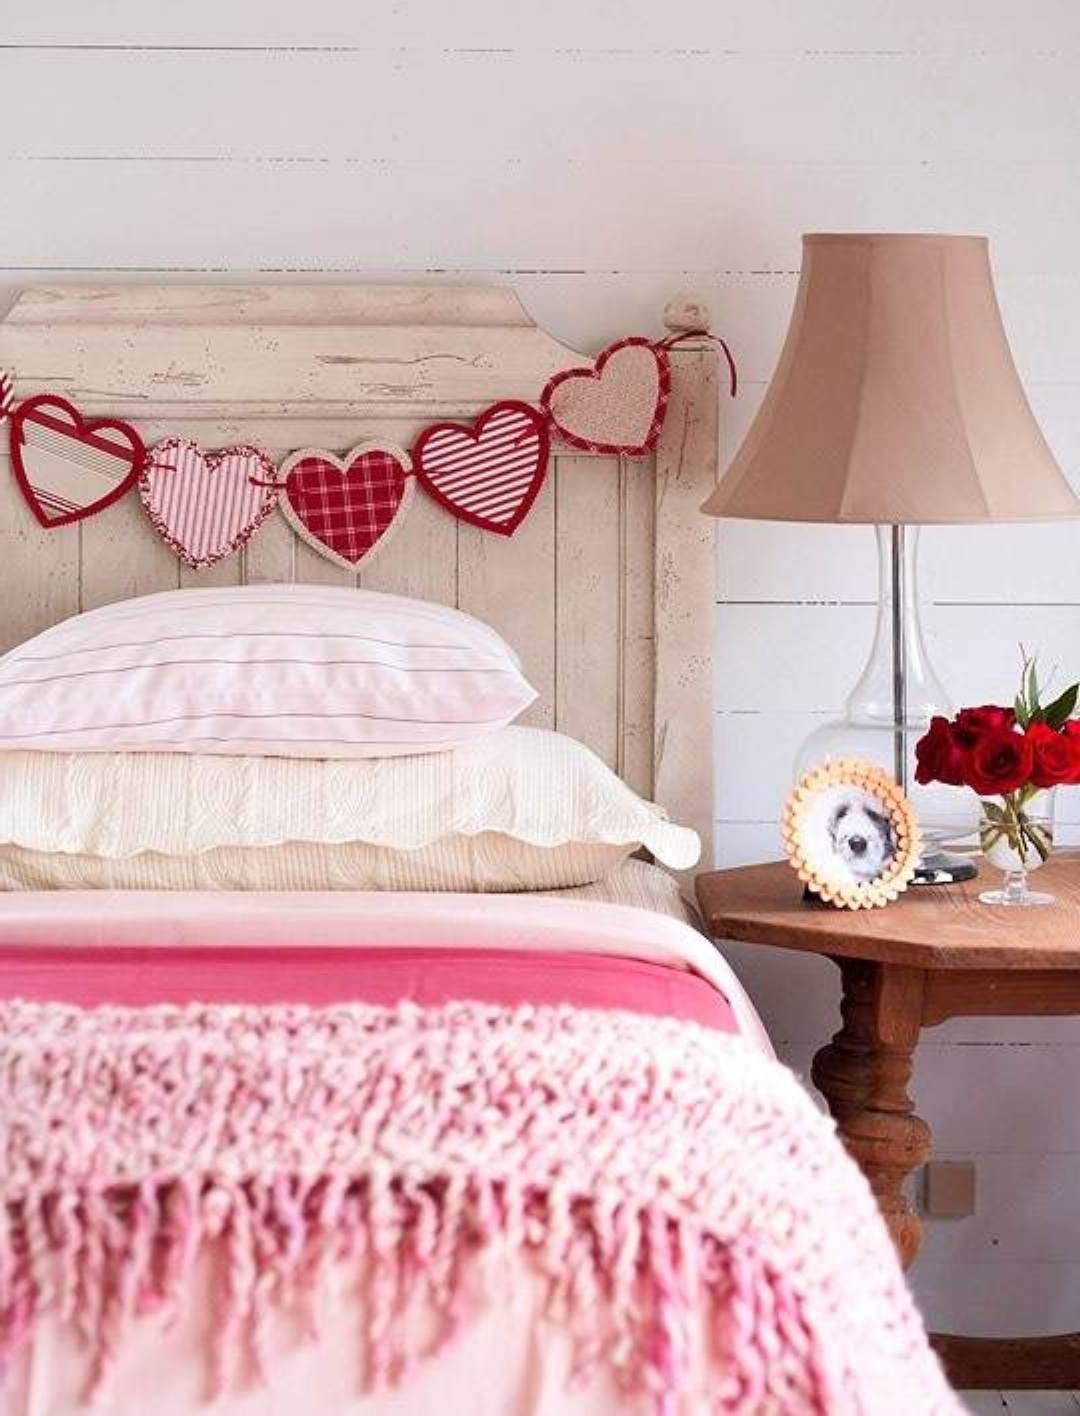 diy bedroom decorating ideas for teenagers - Diy Bedroom Decor Ideas